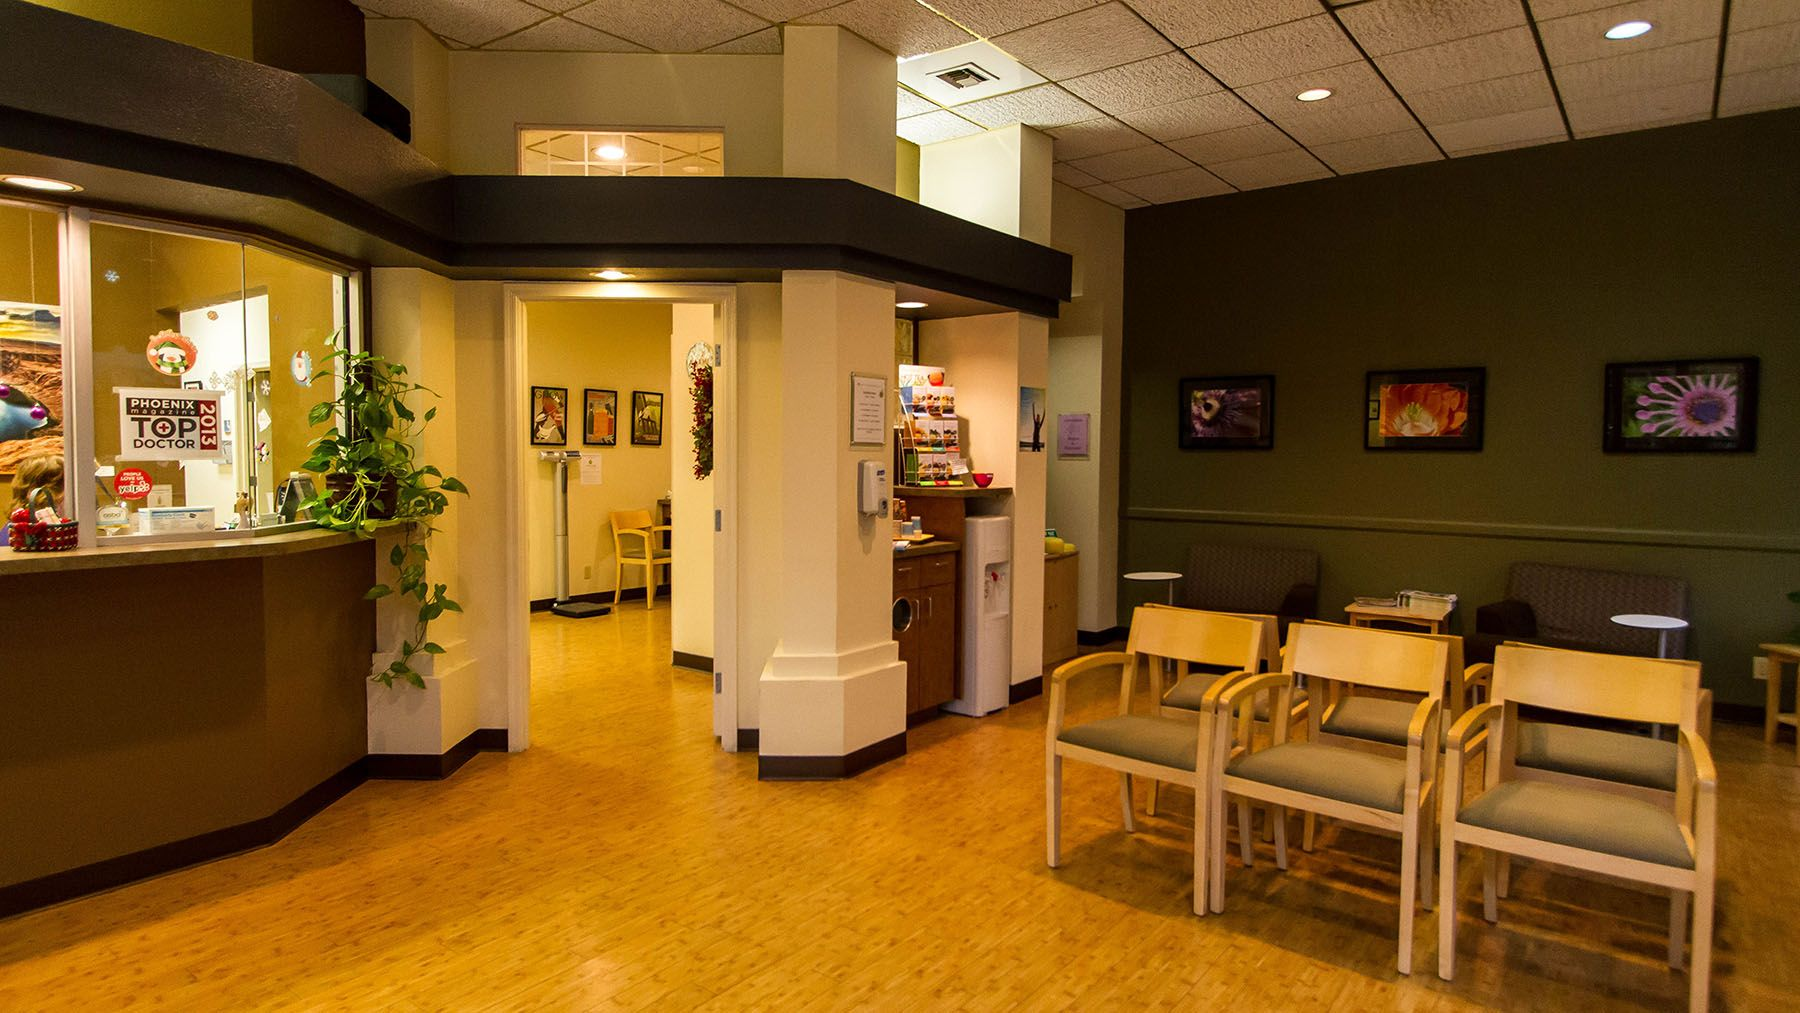 About Us Revolution Health Medical Center Primary care